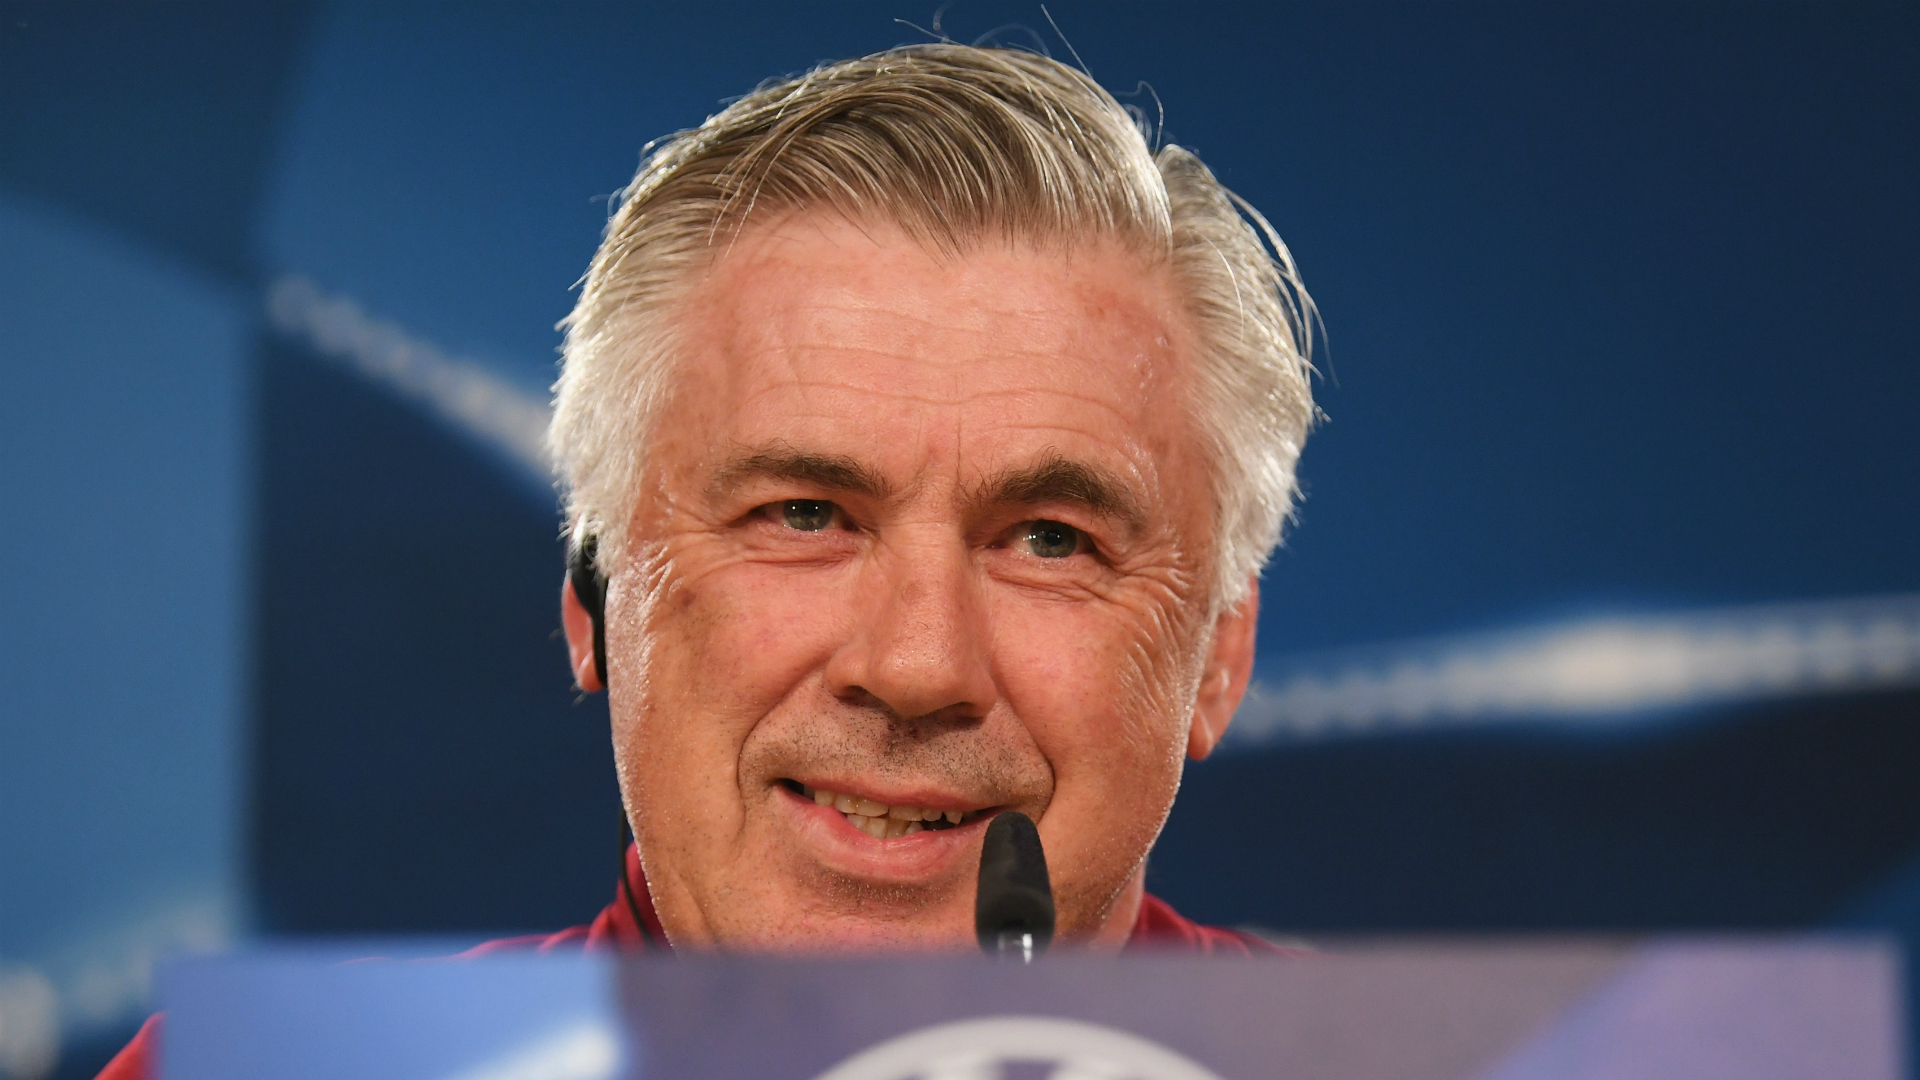 Carlo-ancelotti-bayern-munich-press-conference_th1ru1y4eodo1ohaddqq8olwb